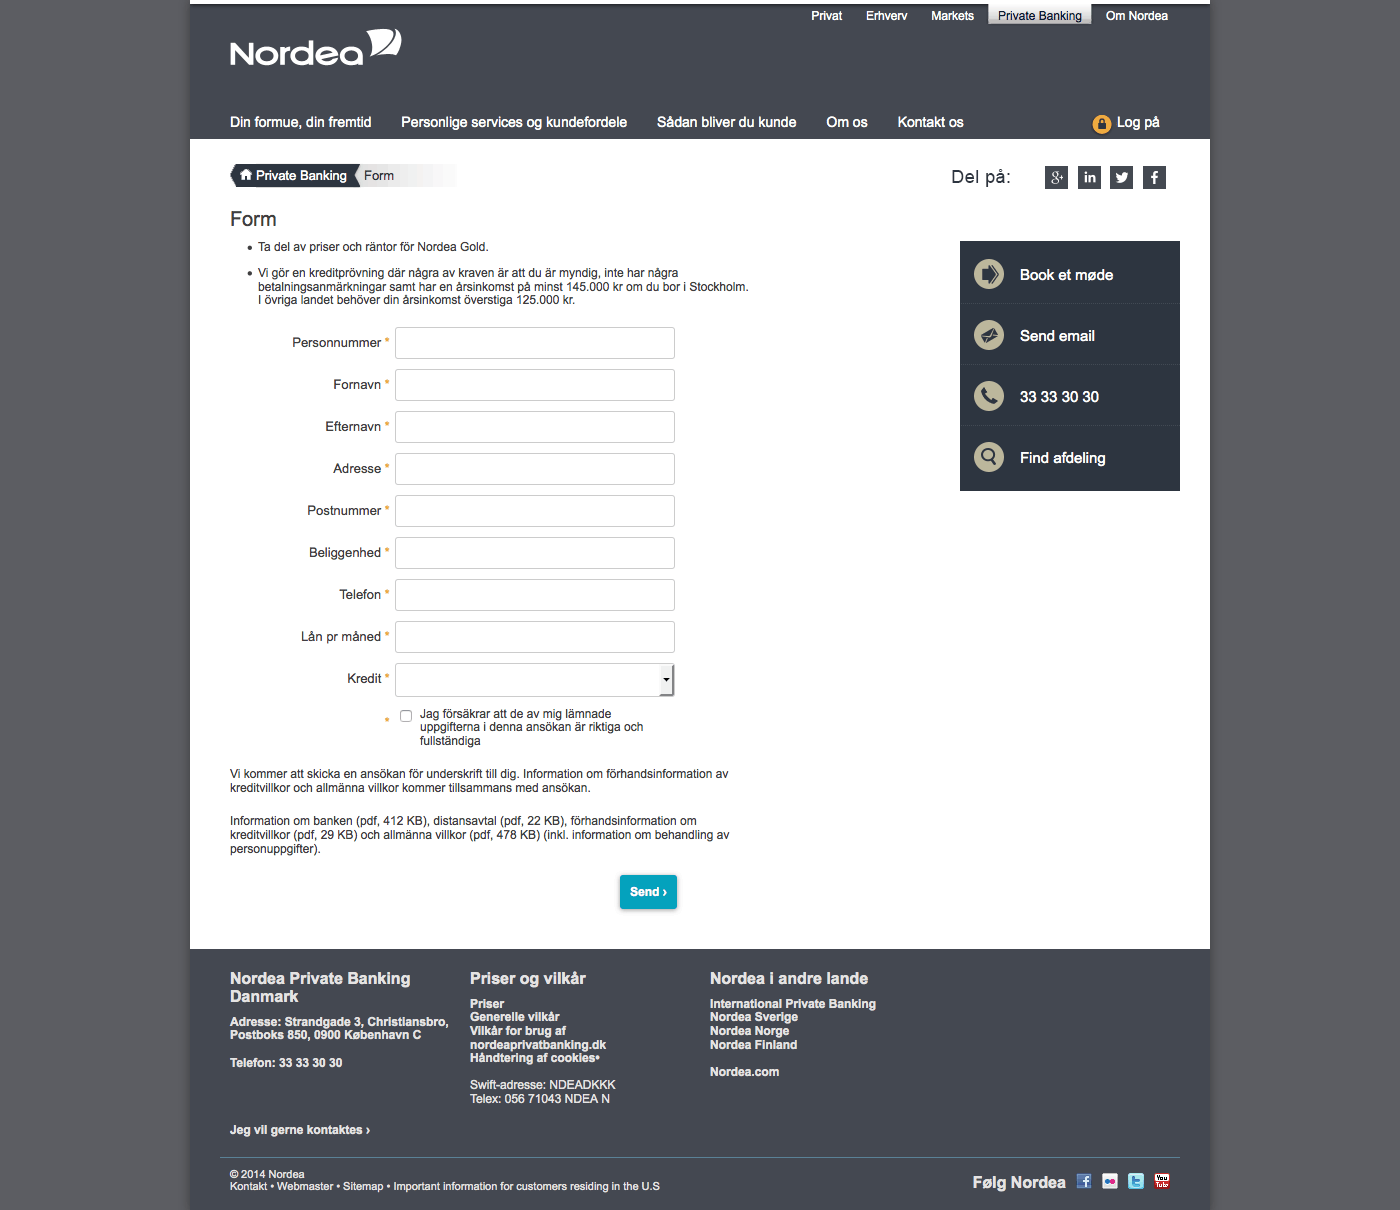 Nordeaprivatebanking_form_26_08_2015